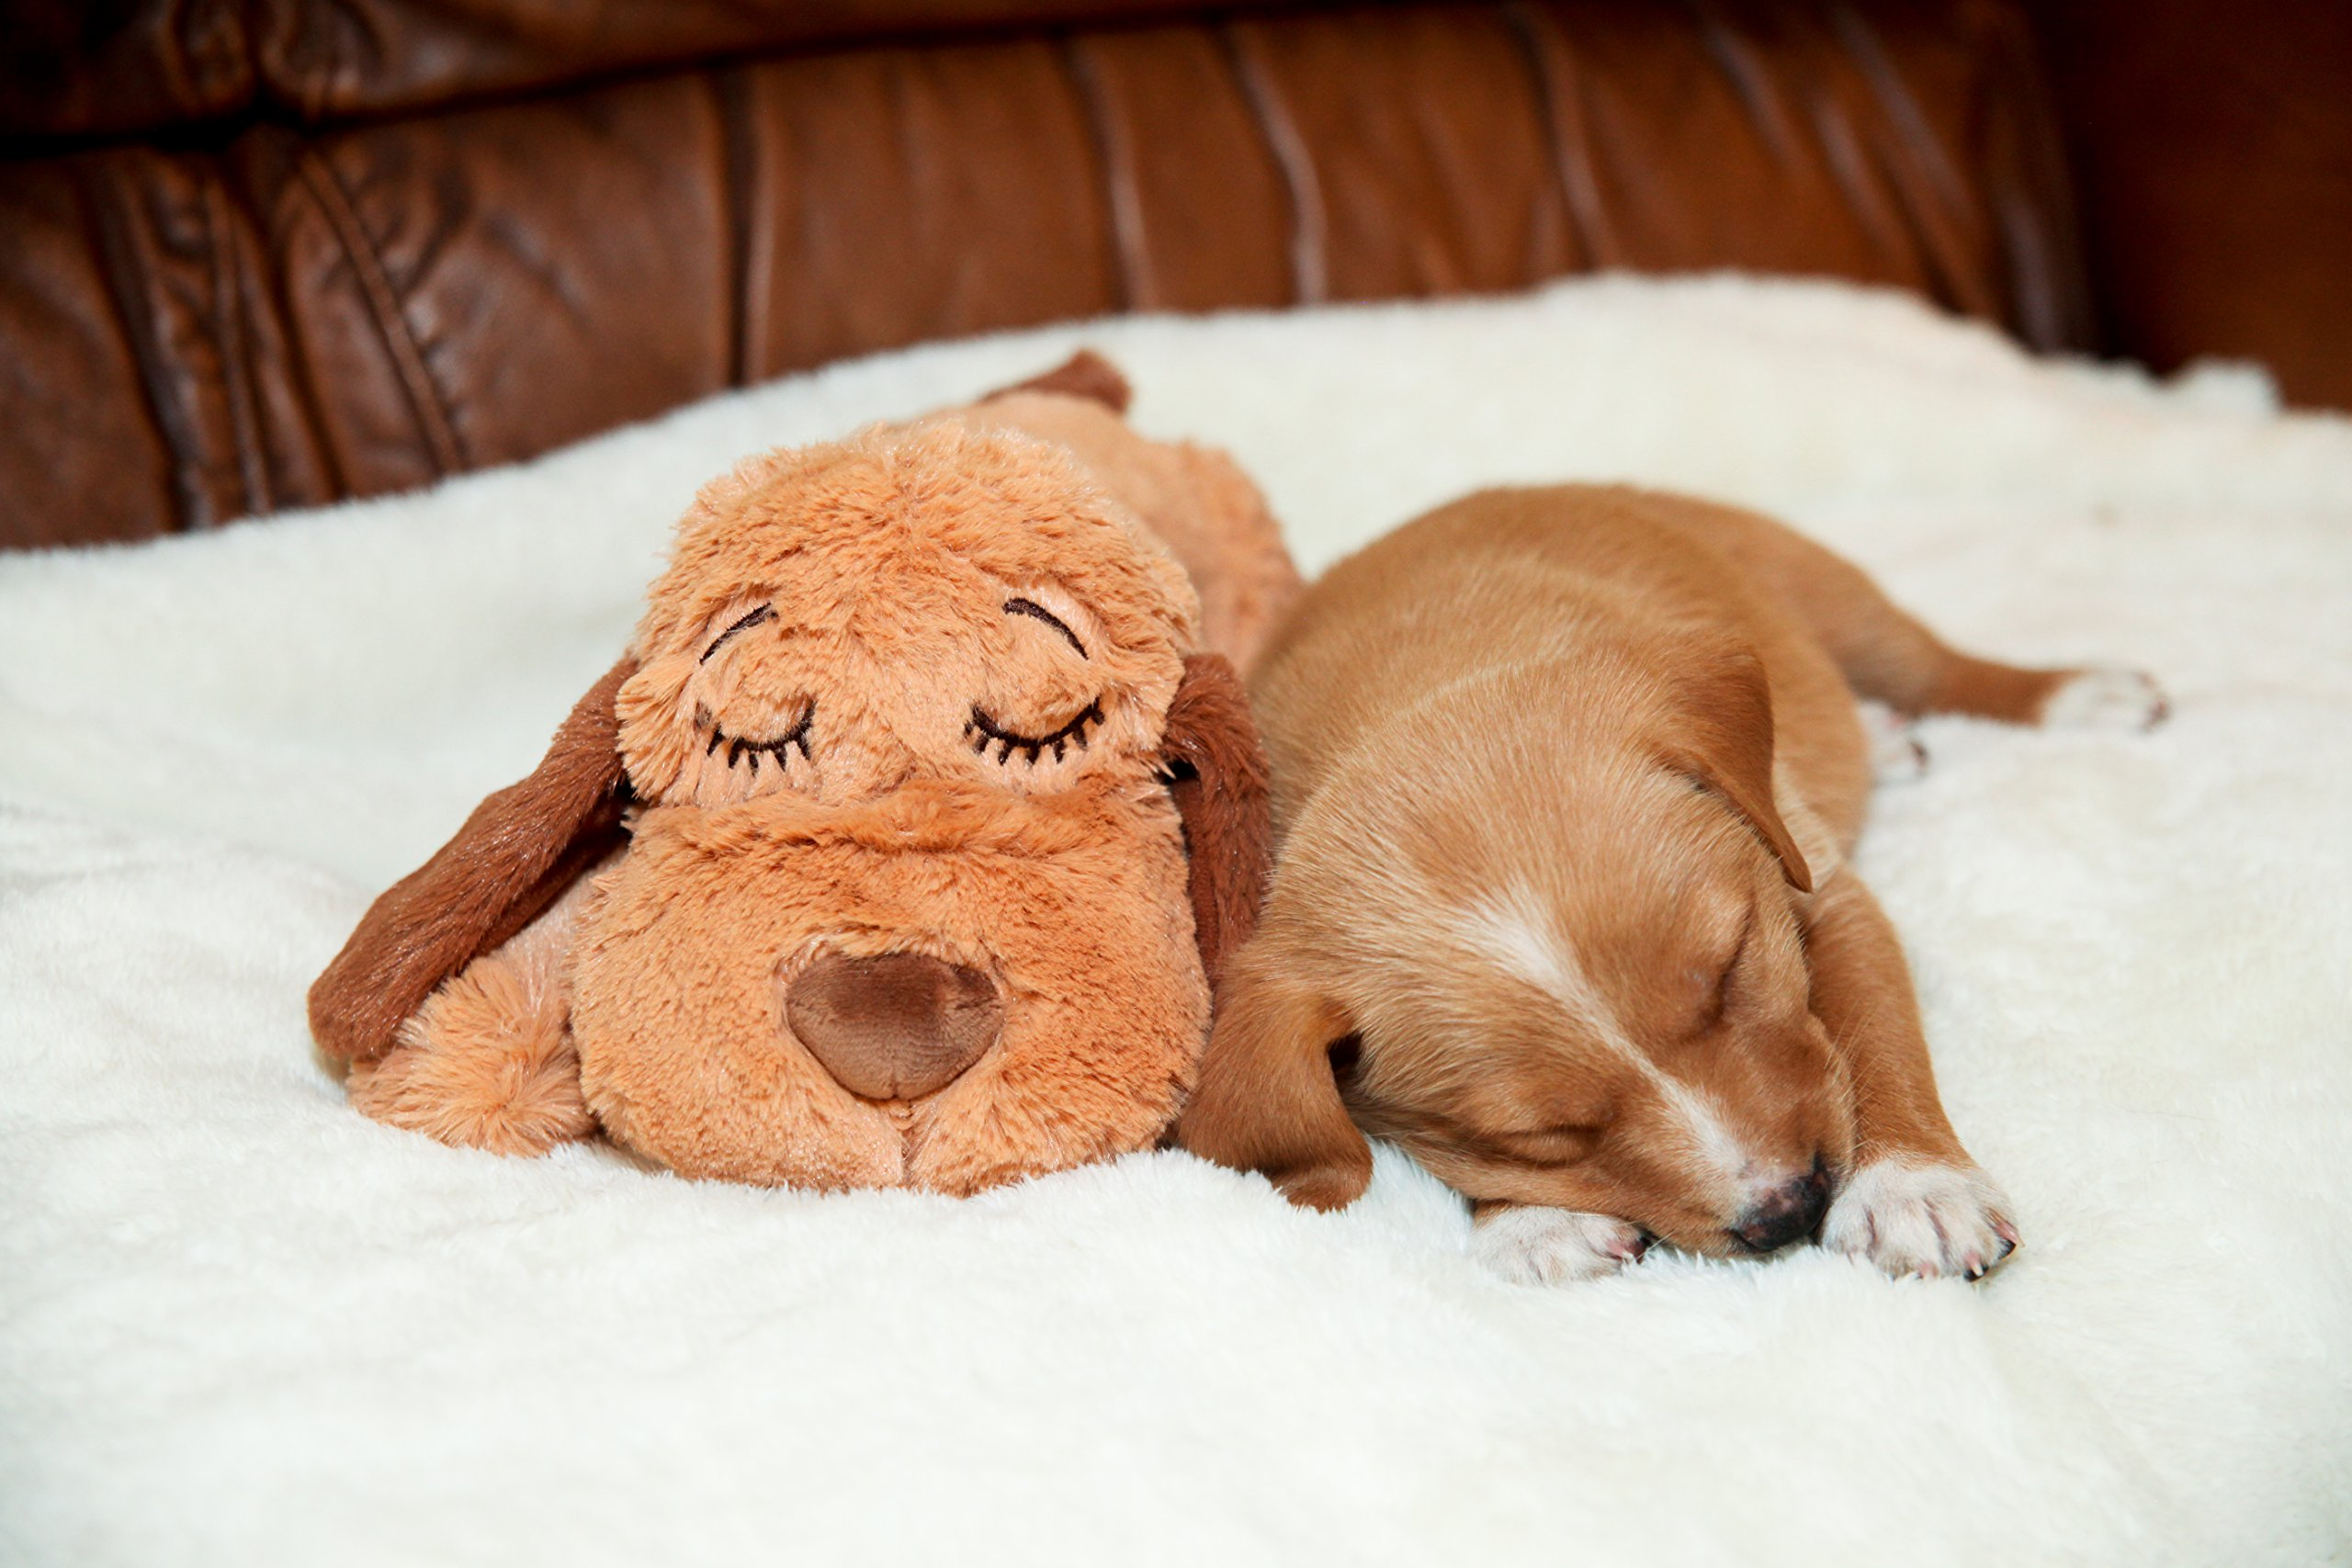 Smart Pet Love Snuggle Puppy Behavioral Aid Toy, Brown Mutt by Smart Pet Love (Image #6)